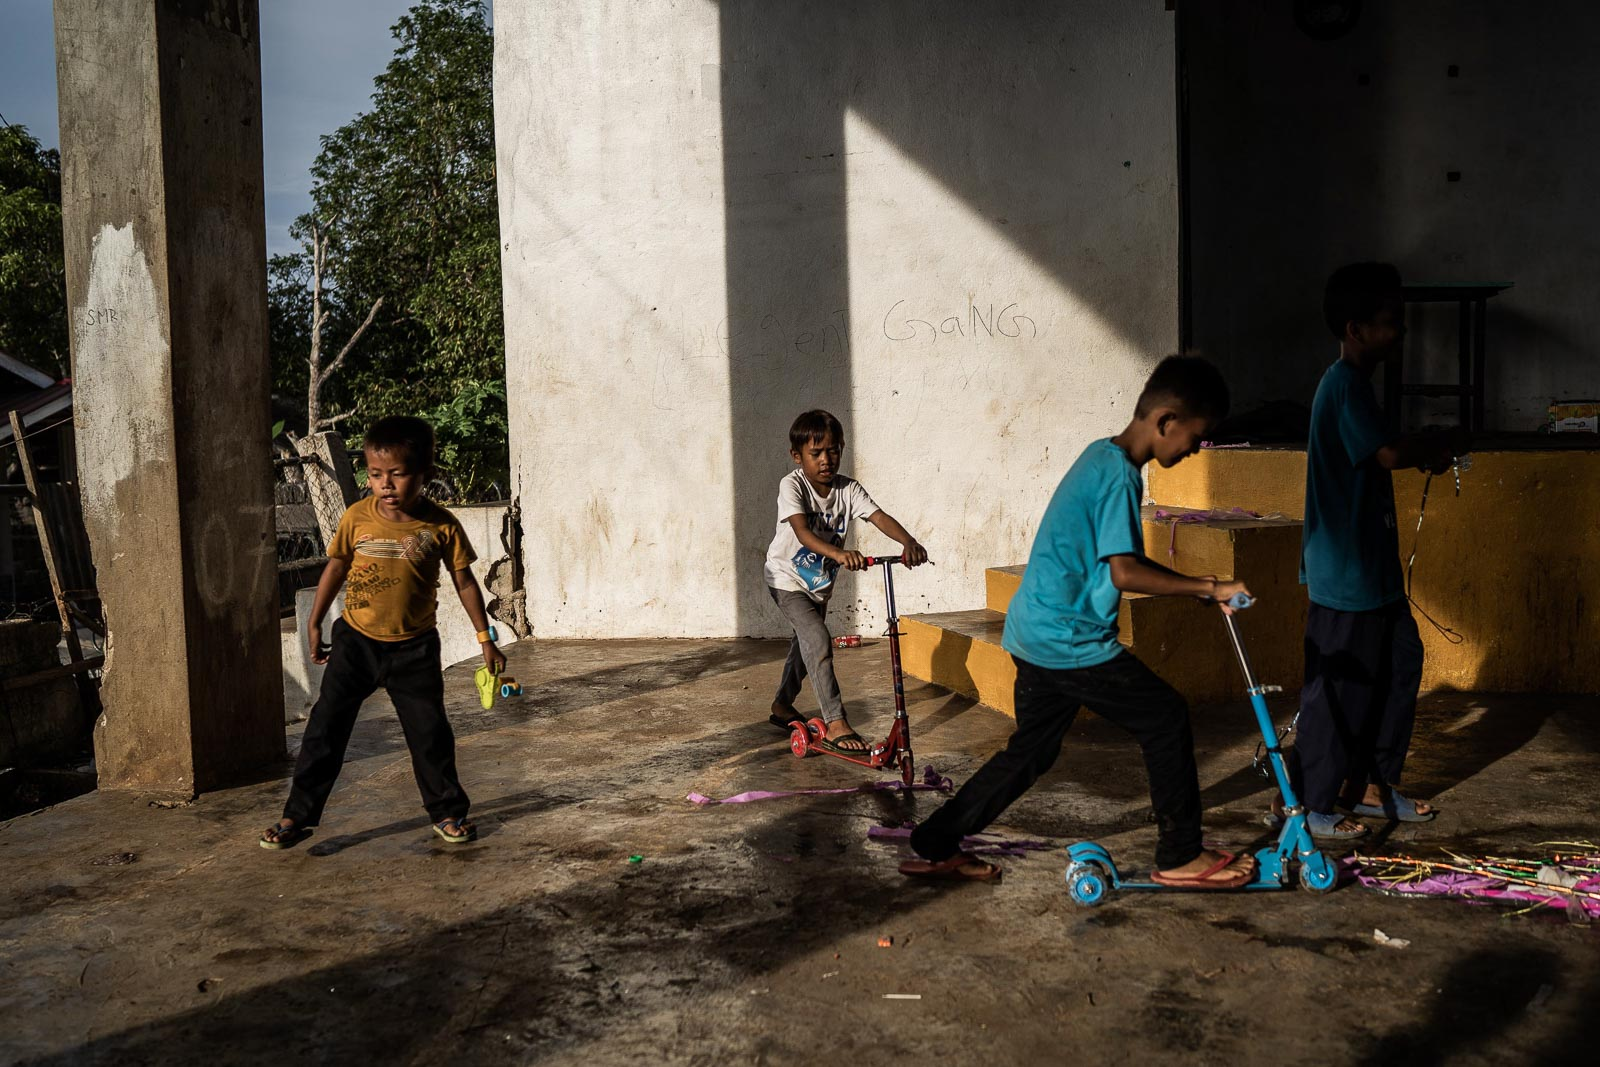 DEALING WITH TRAUMA. Children, some sons of rebel fighters, play with gifts in Basilan Island. Many of the ISIS fighters that came to Marawi in 2017, including its leader Isnilon Hapilon, were from this island. Photo by Martin San Diego